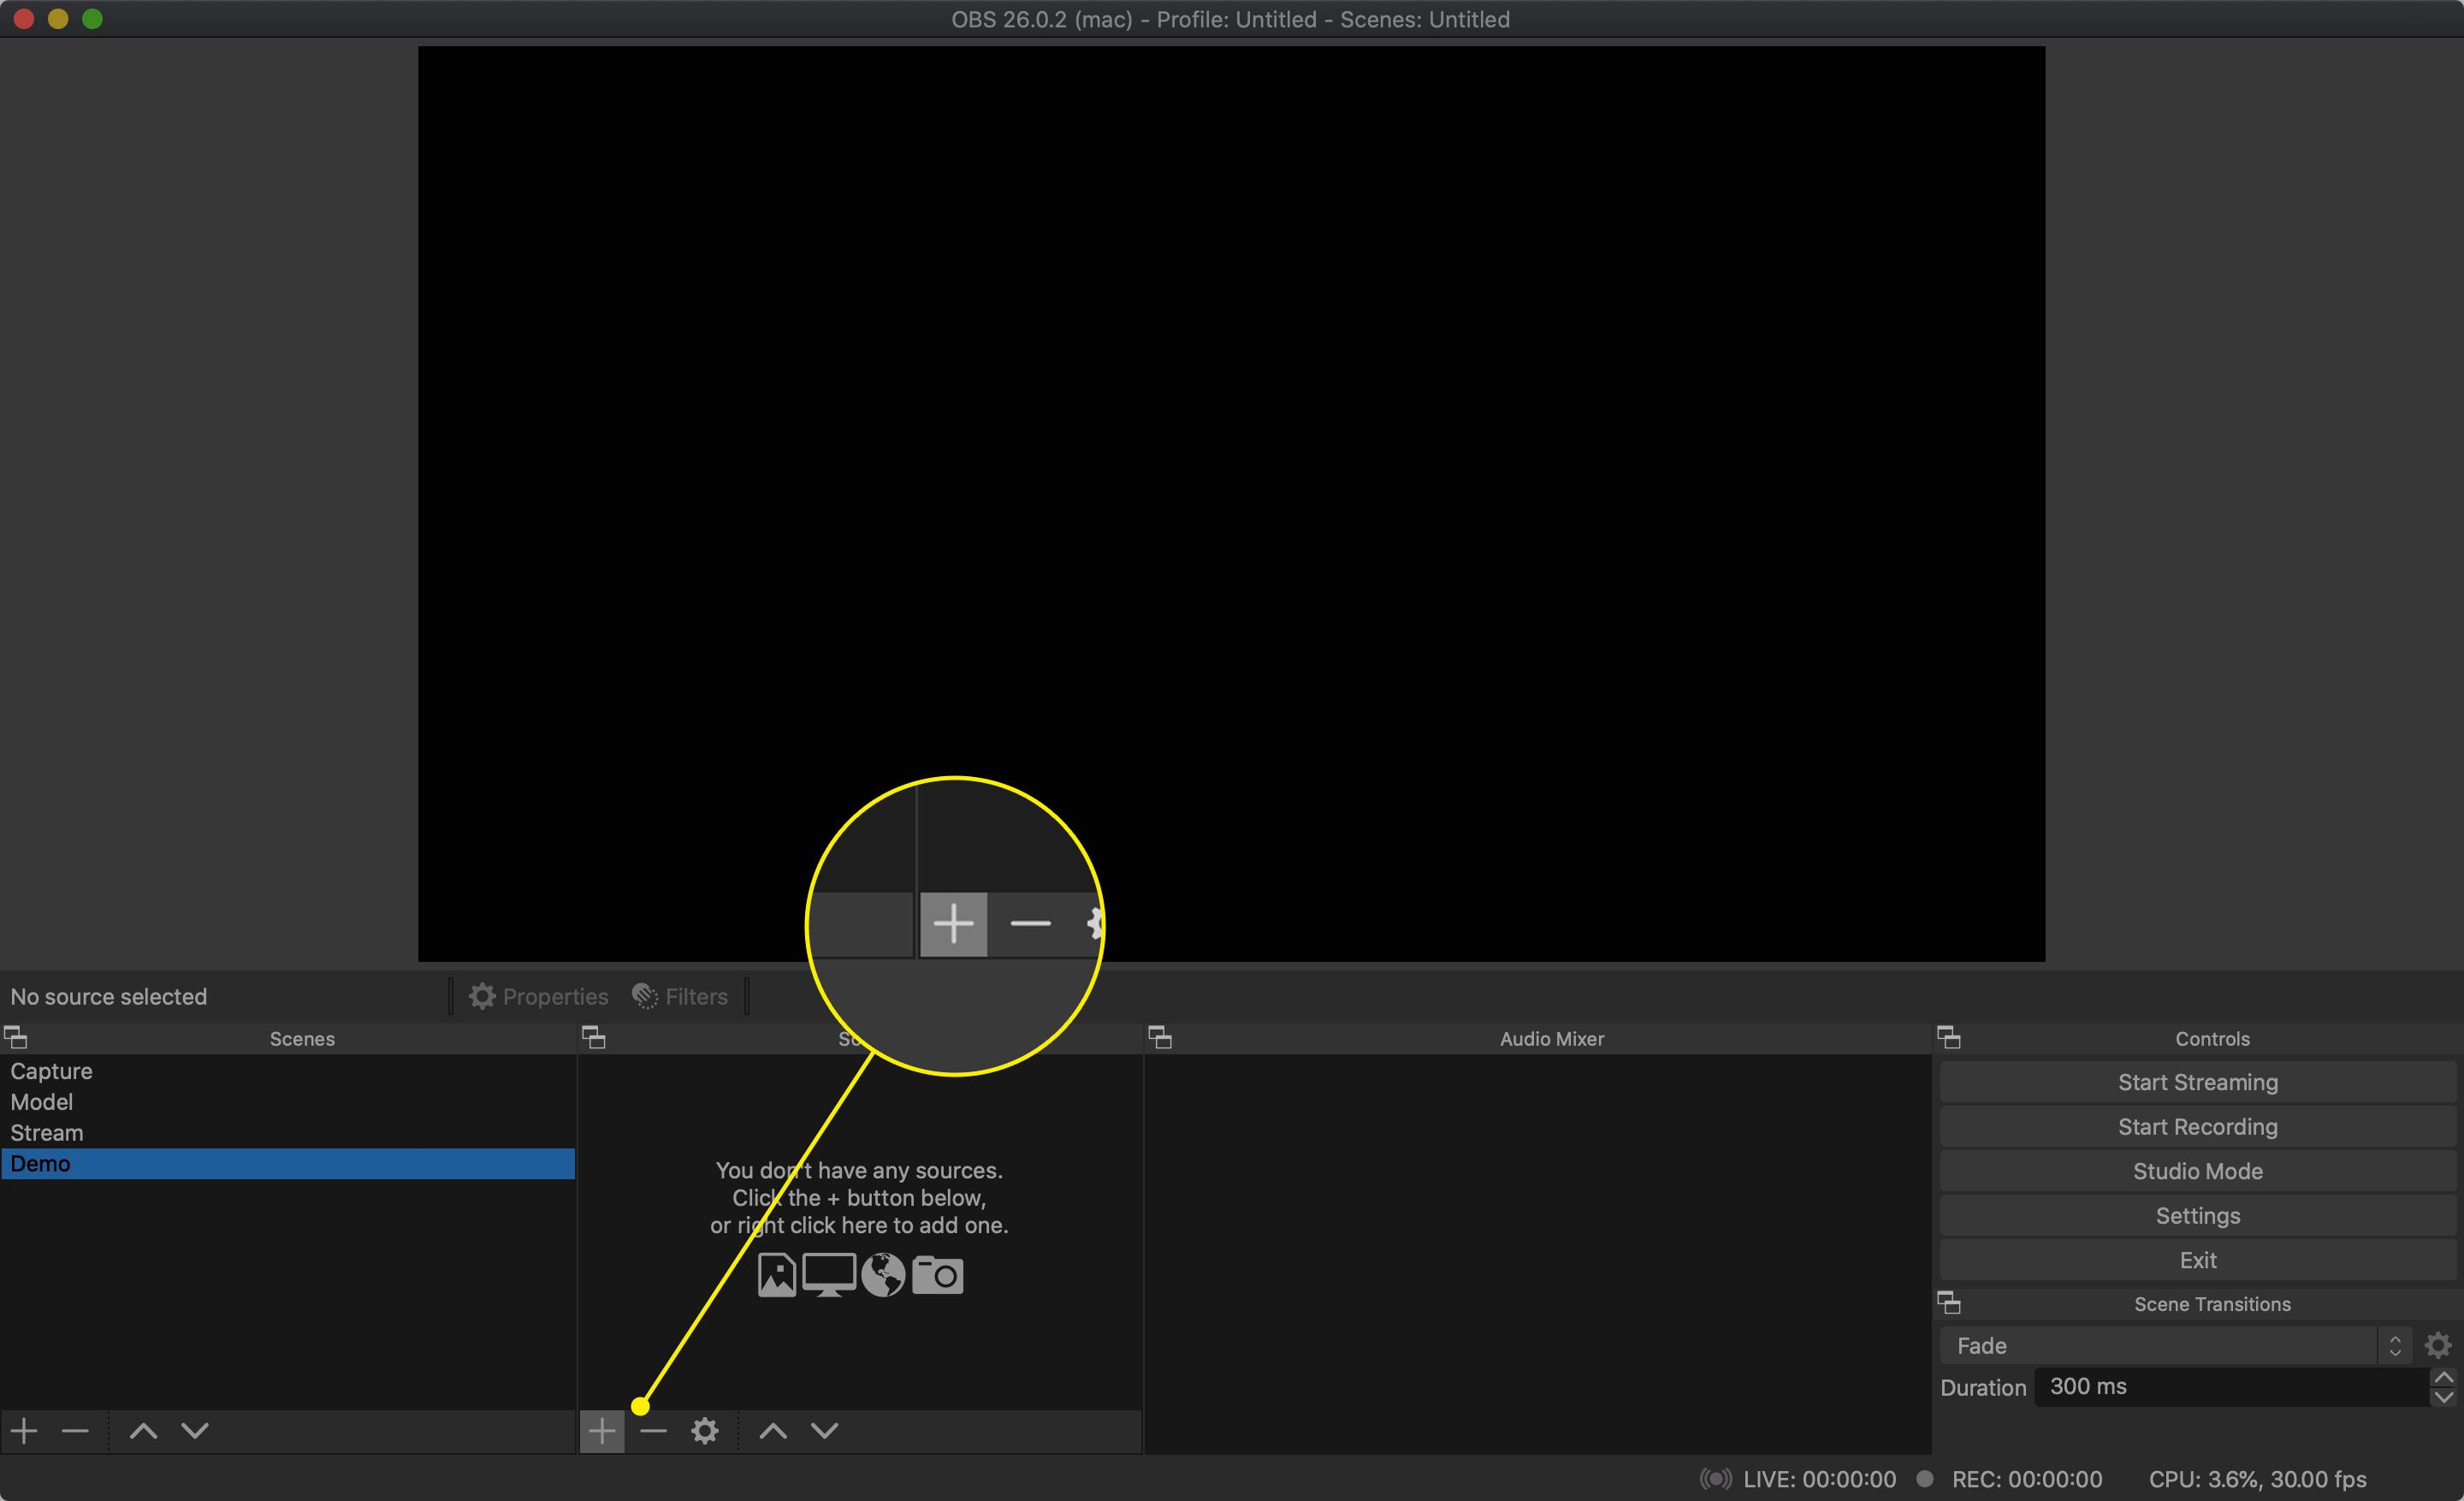 The Add Source button in OBS